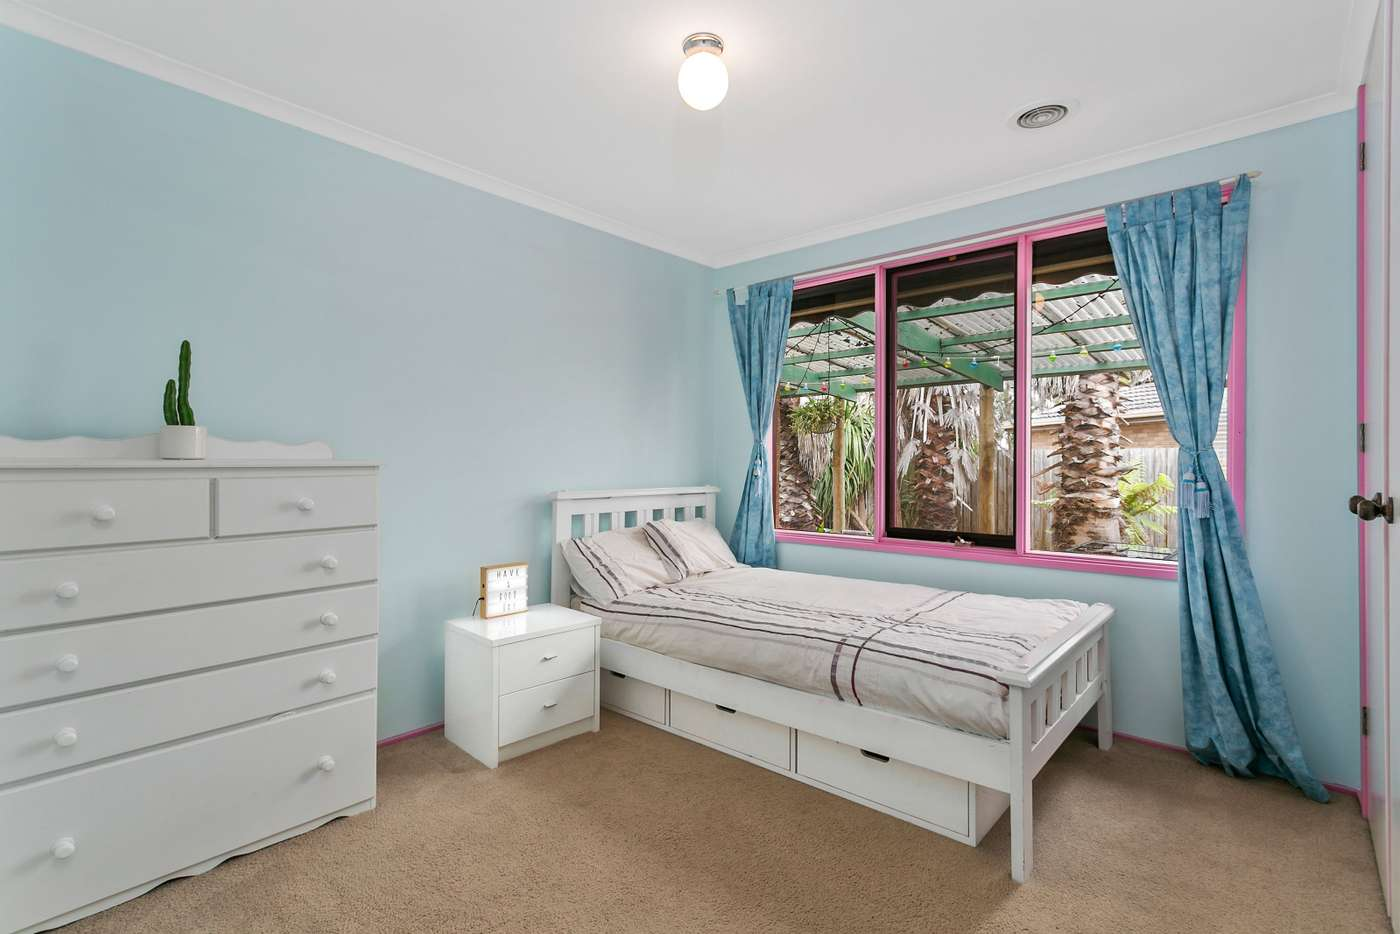 Fifth view of Homely house listing, 11 Cressonierre Court, Hallam VIC 3803